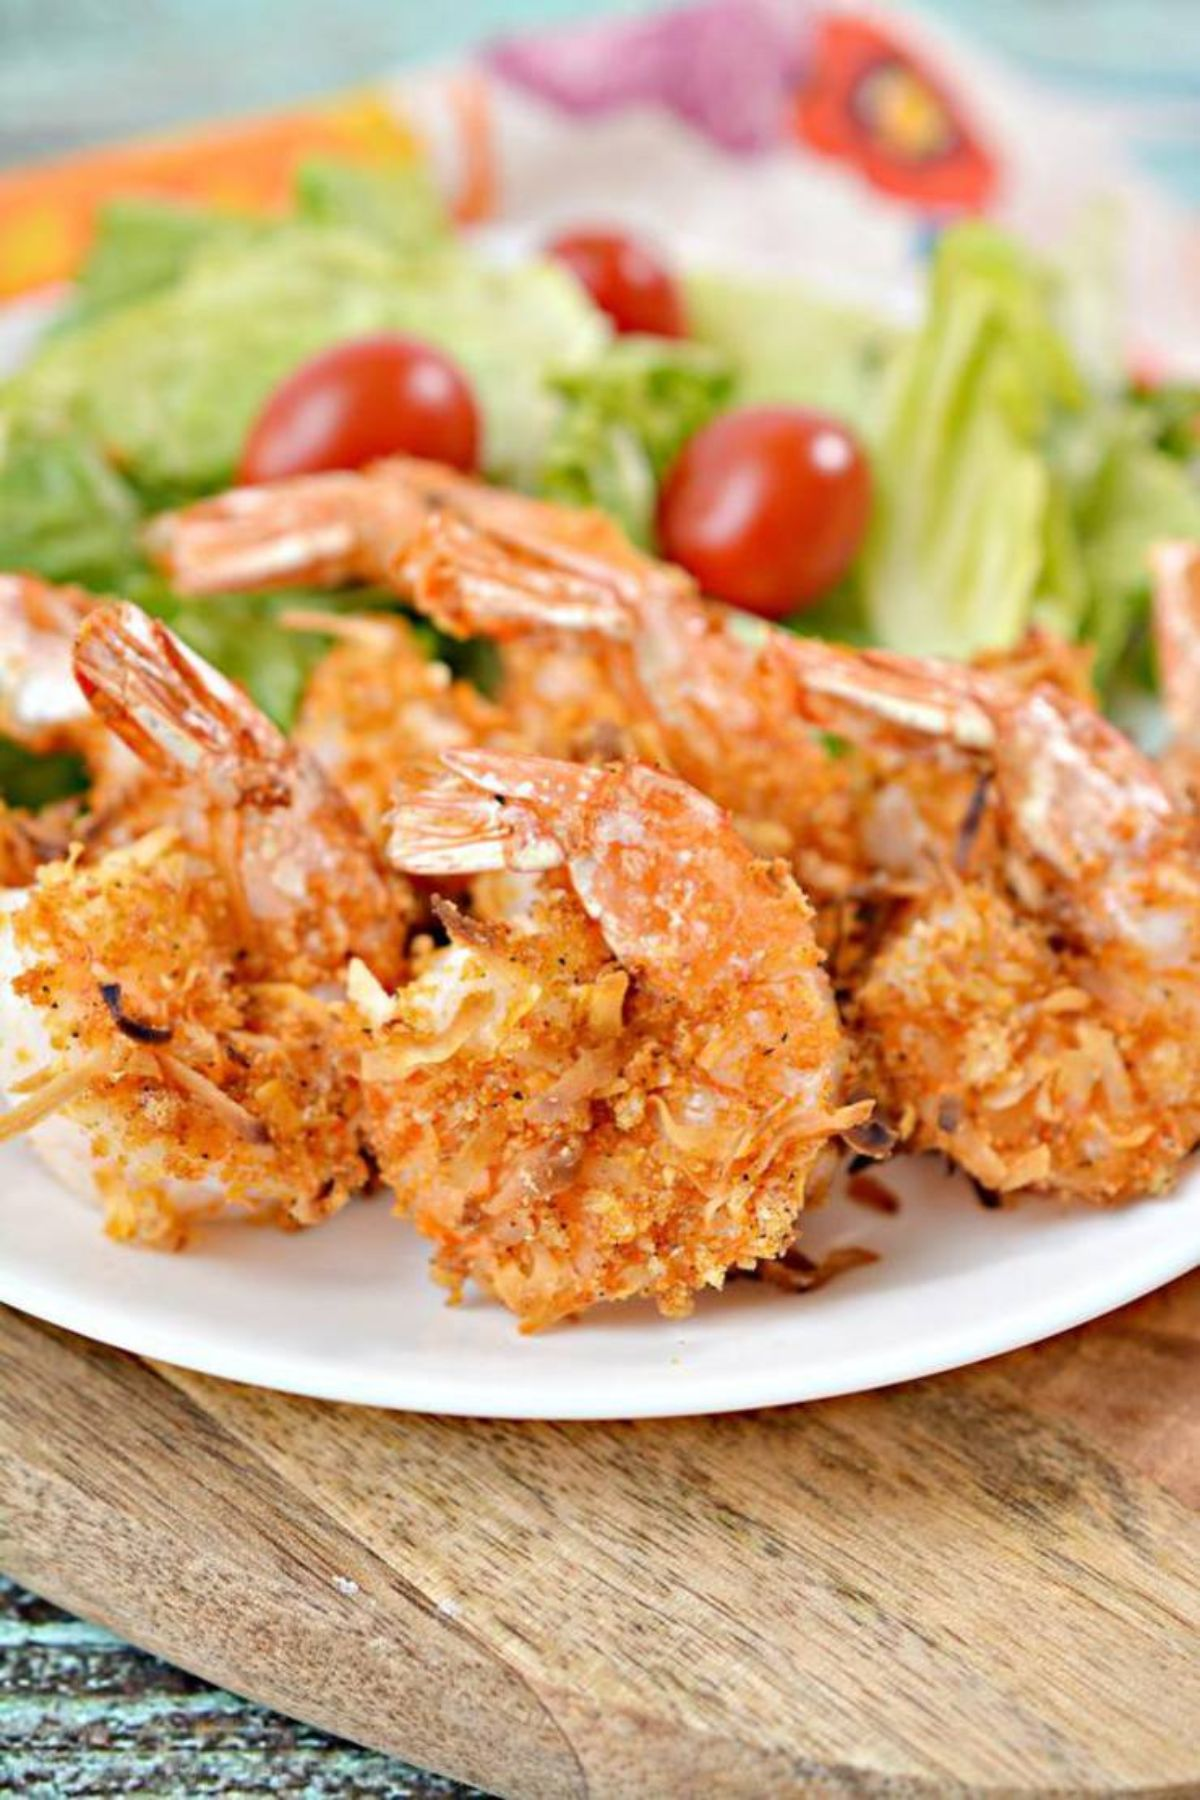 On a partially seen wooden board is a whote plate fll of coconut shrimp in front of a lettuce and cherry tomato salad